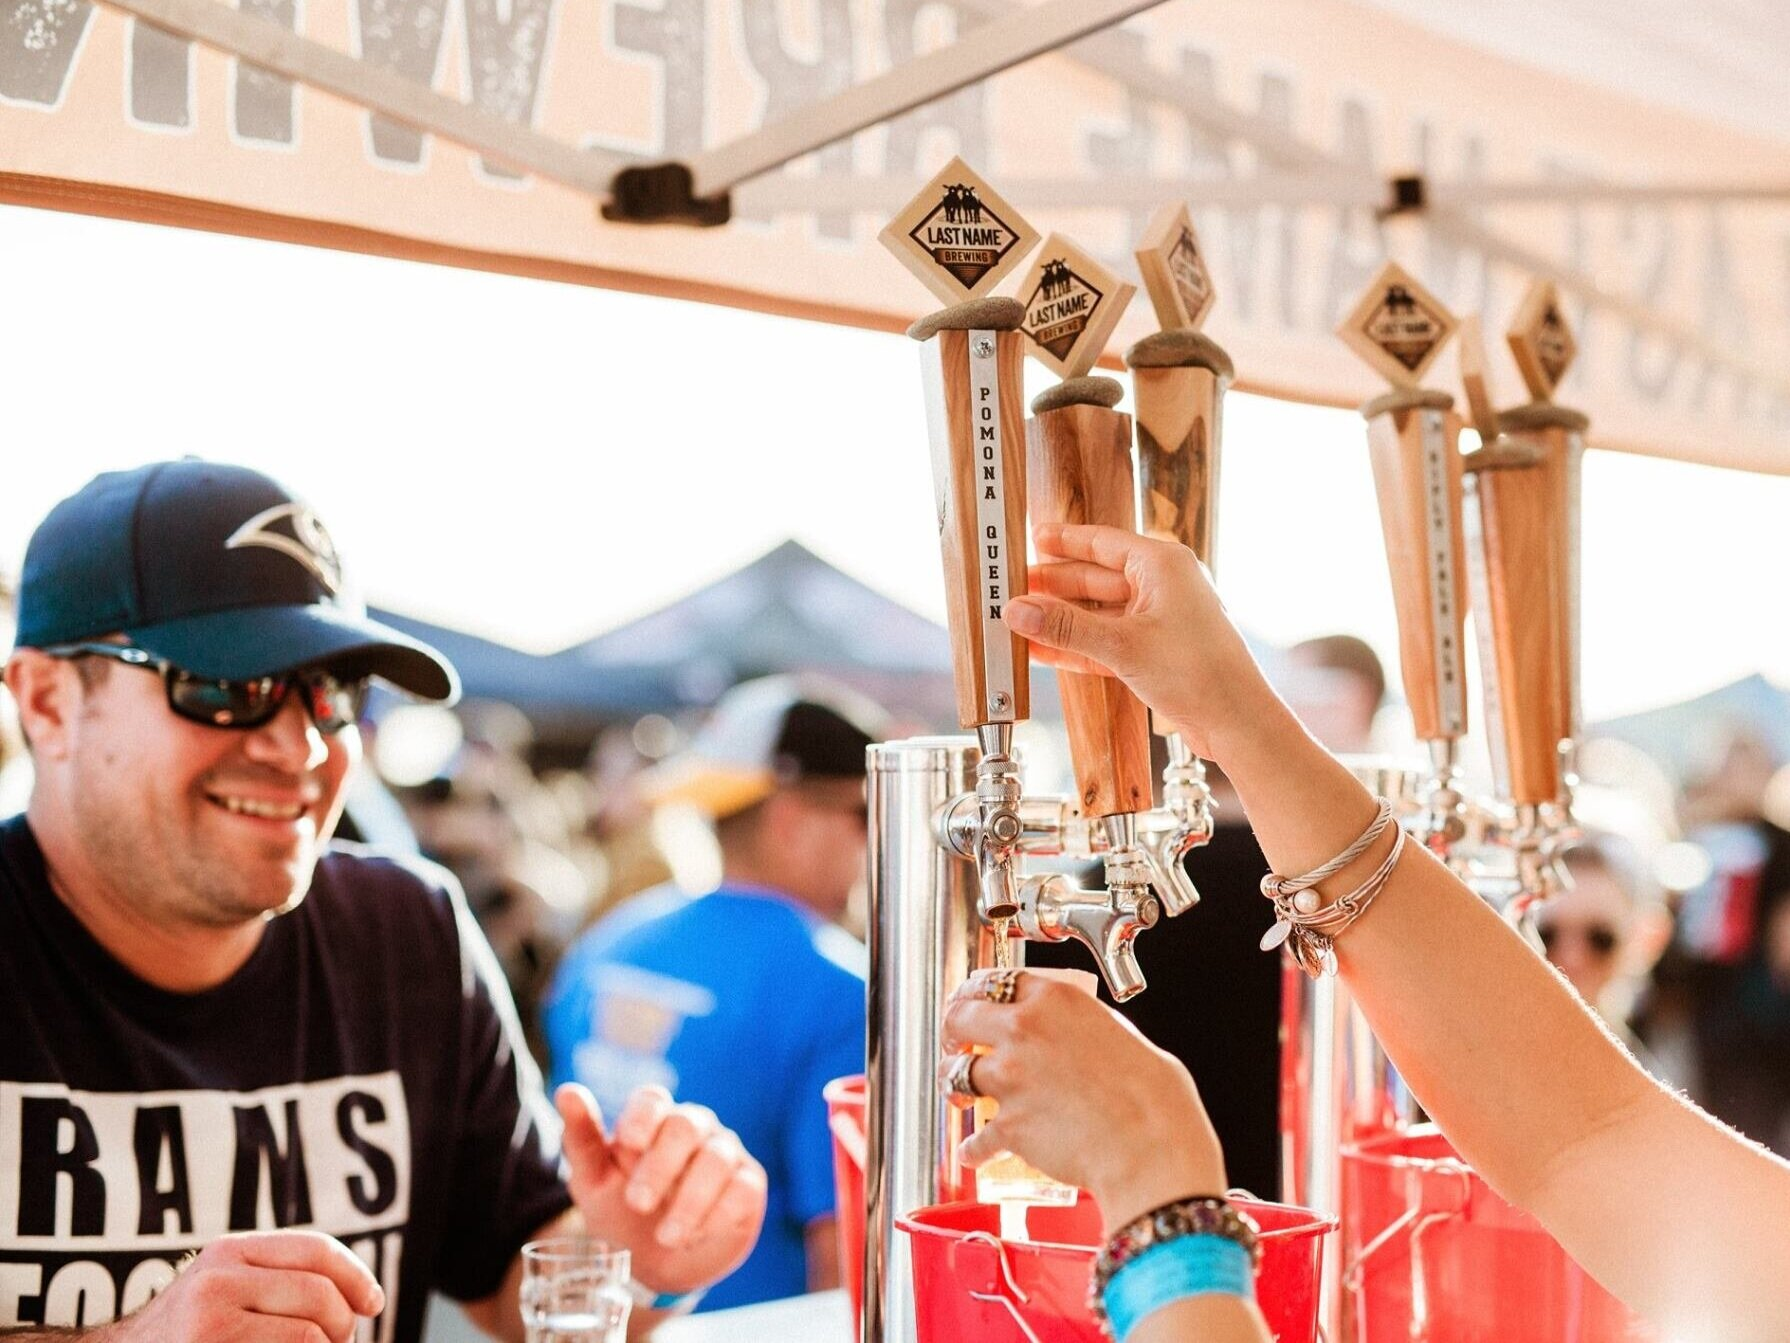 Brews and Bros Fest